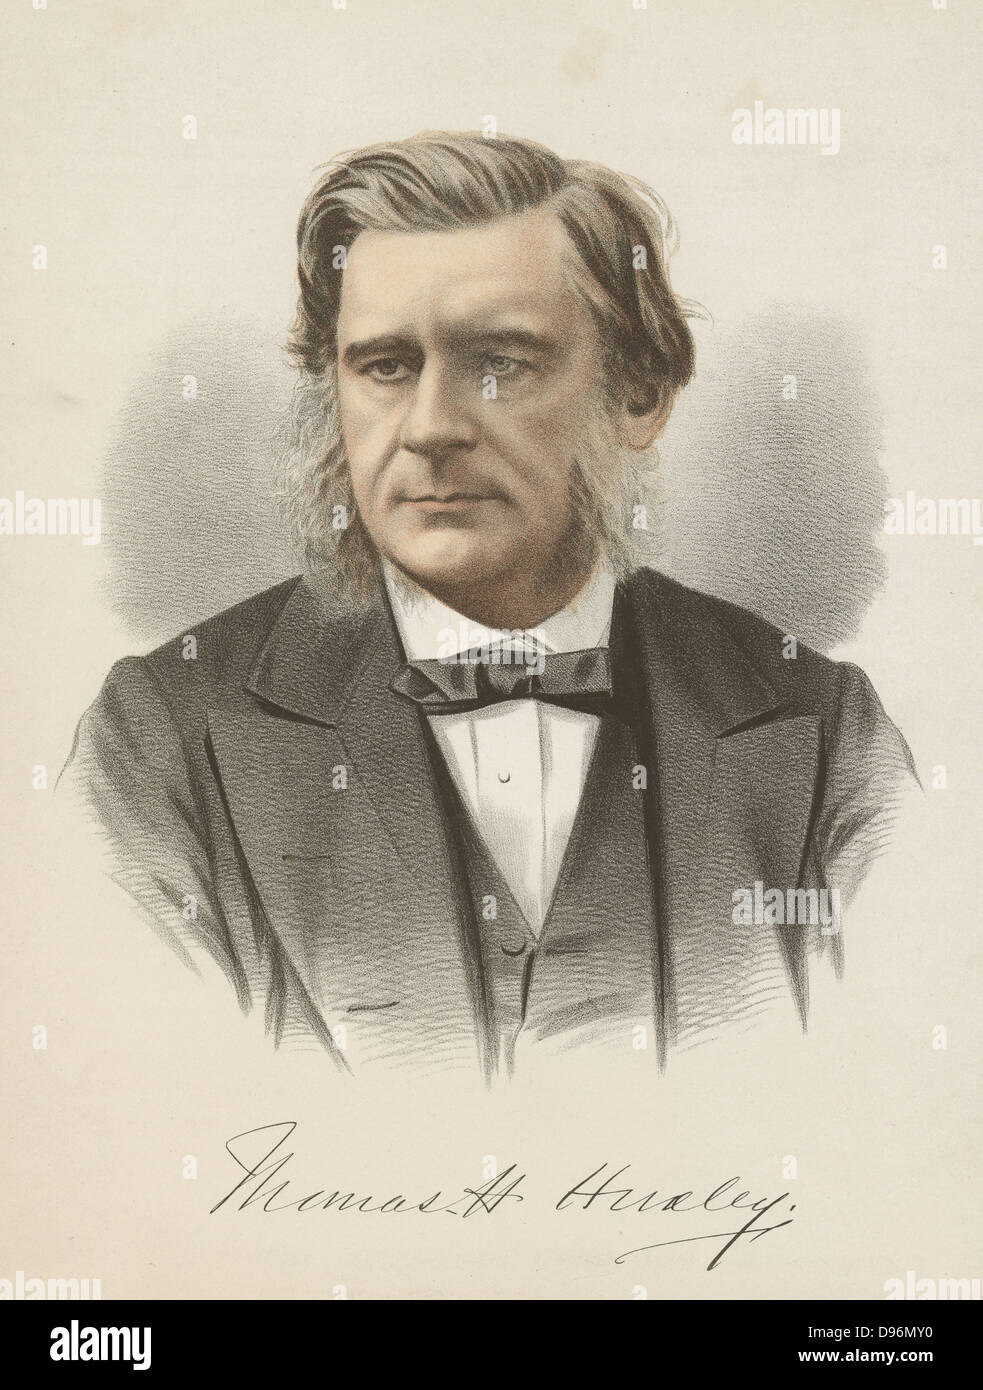 Thomas Henry Huxley (1825-1895) British biologist, champion of Darwin. From 'The National Portrait Gallery', - Stock Image